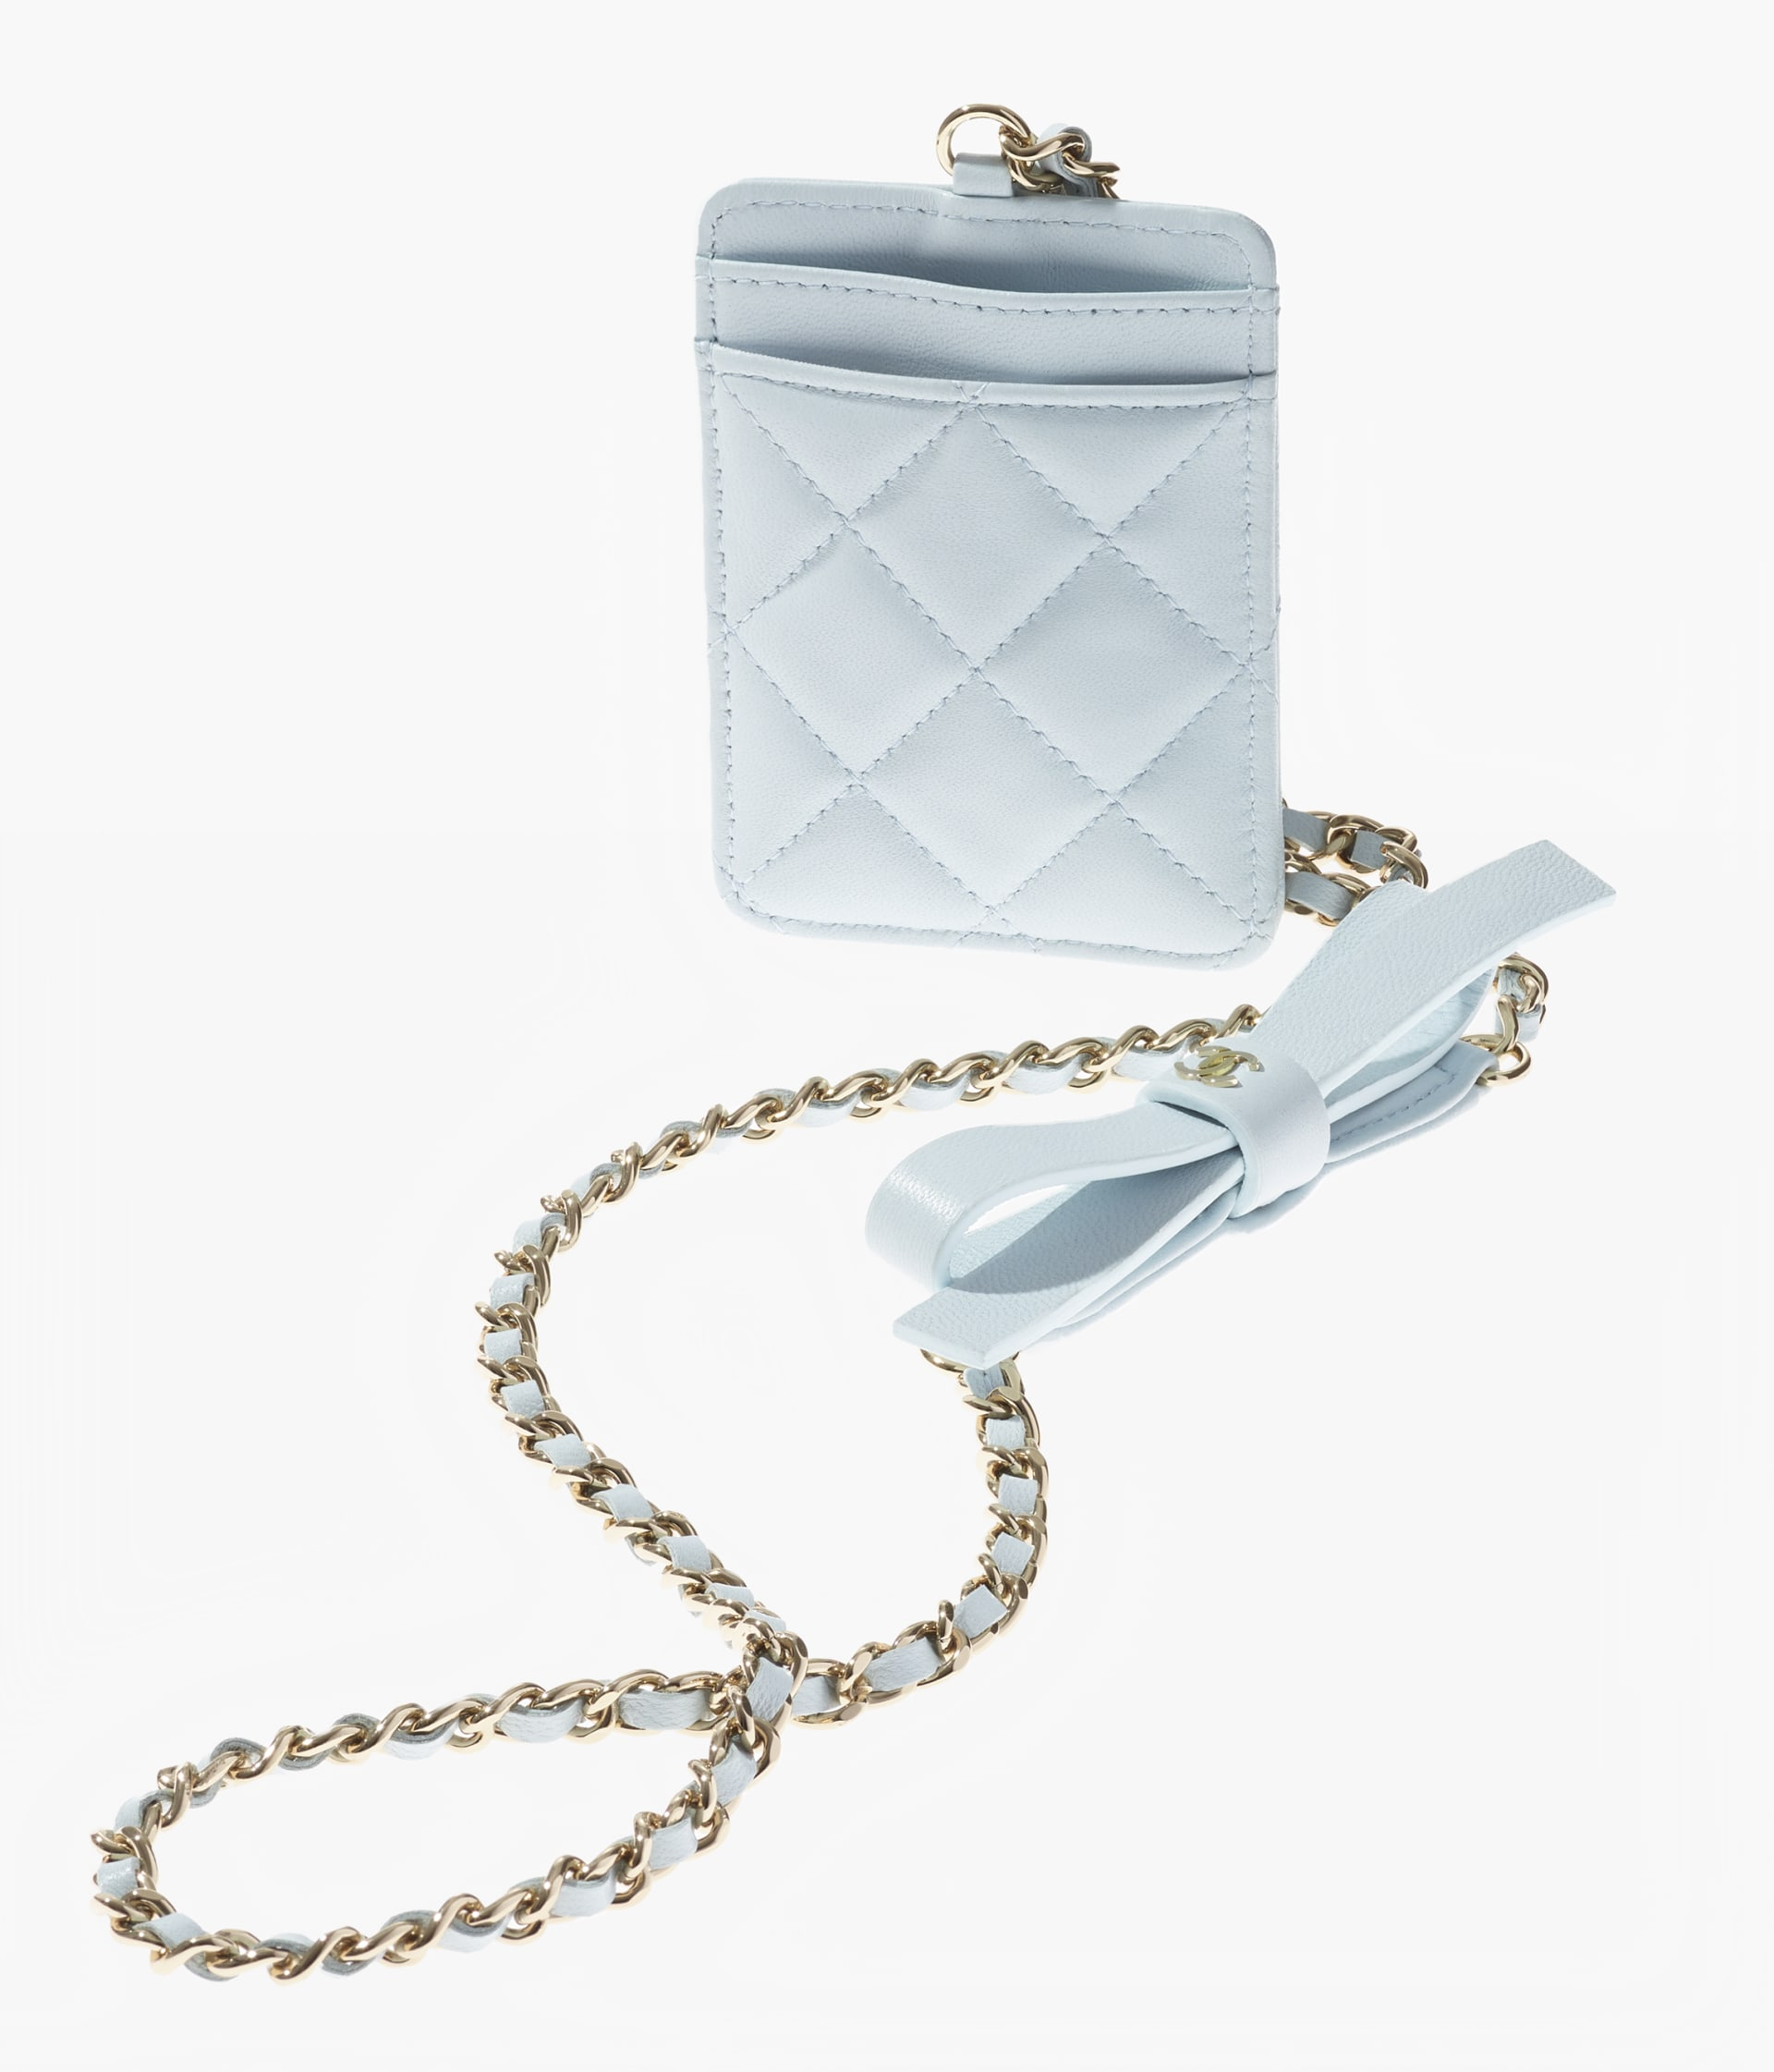 image 4 - Card Holder with Chain - Lambskin & Gold-Tone Metal - Light Blue